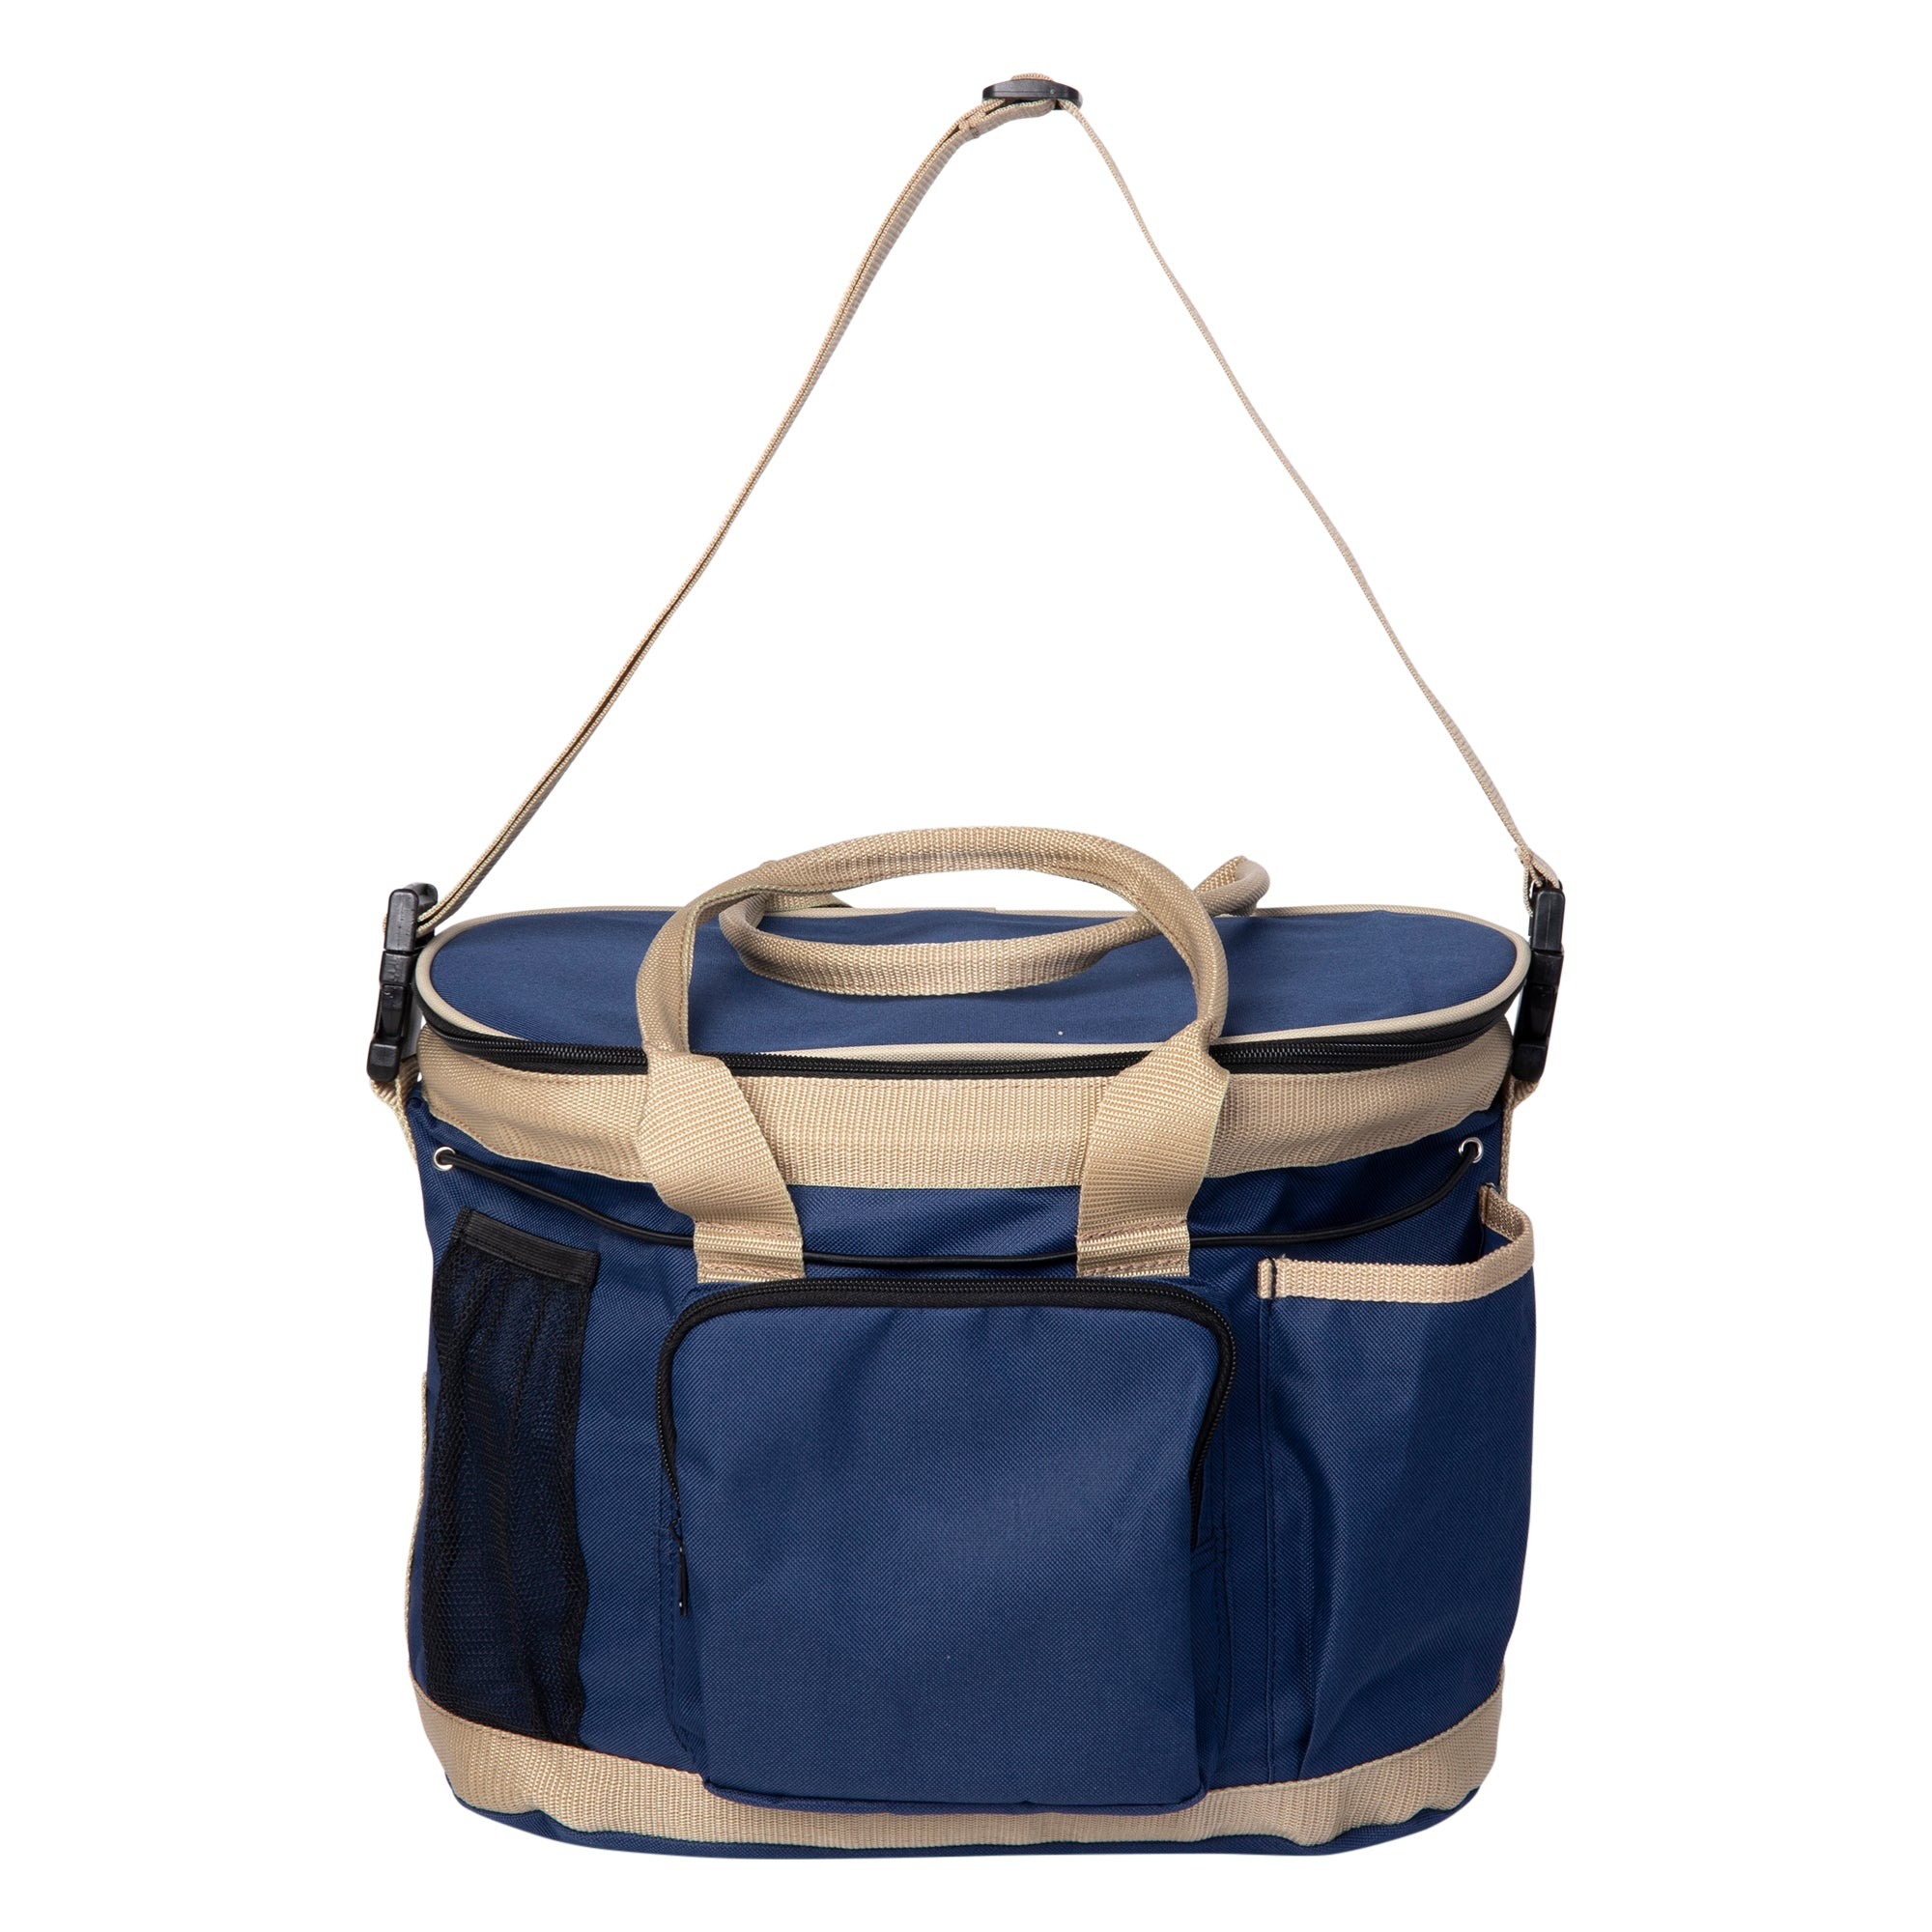 Huntley Equestrian Deluxe Grooming Bag, Navy